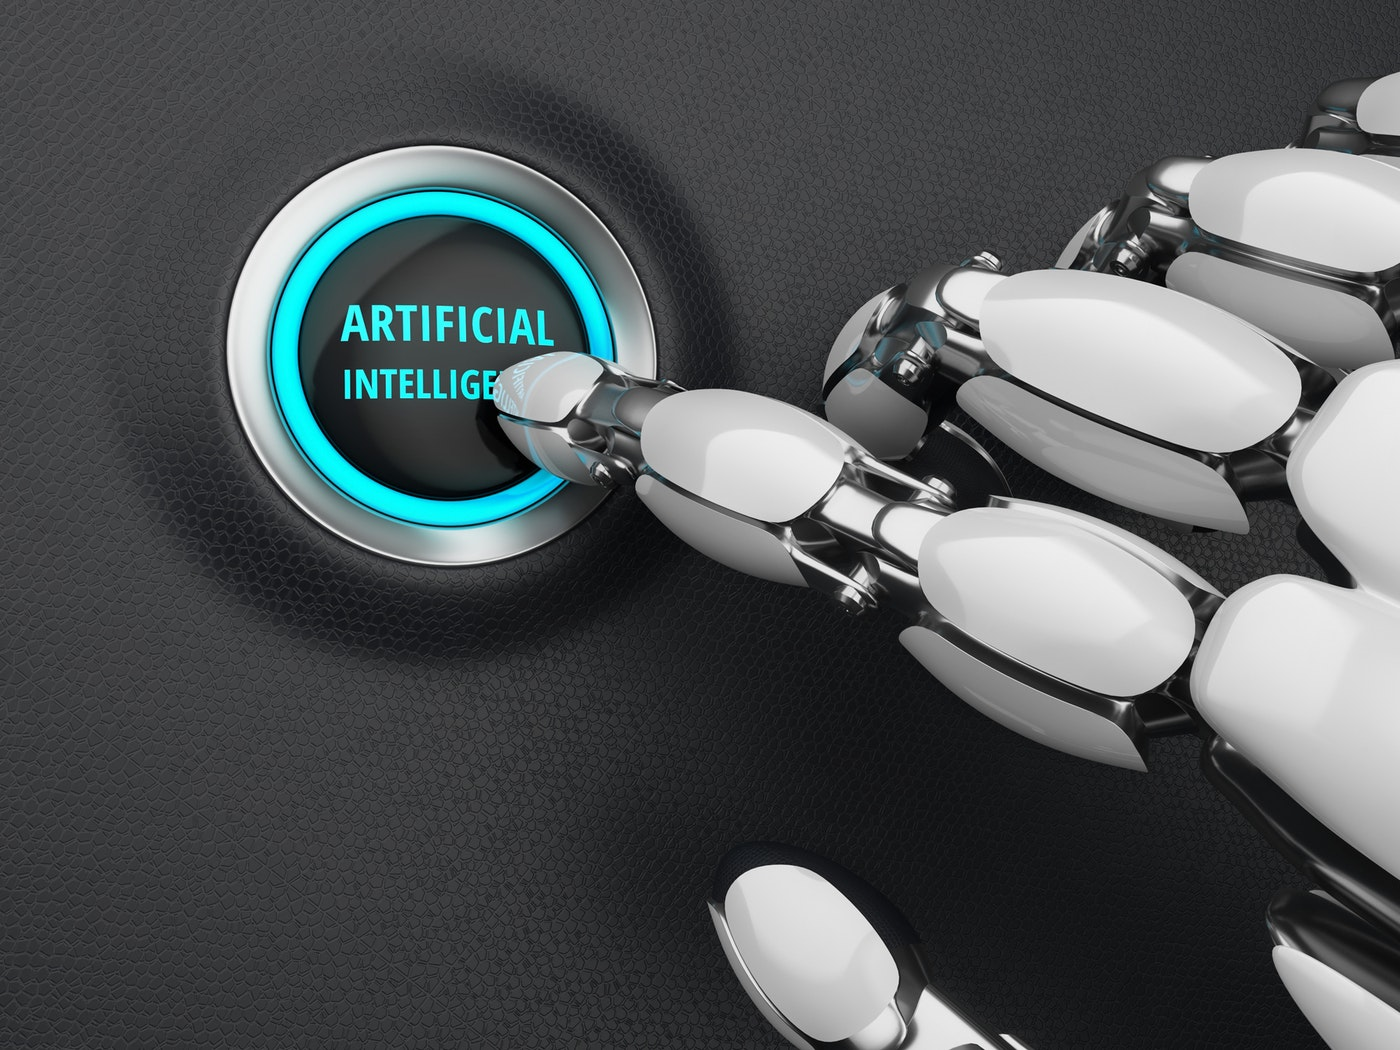 Rules to encourage well behaved artificial intelligence